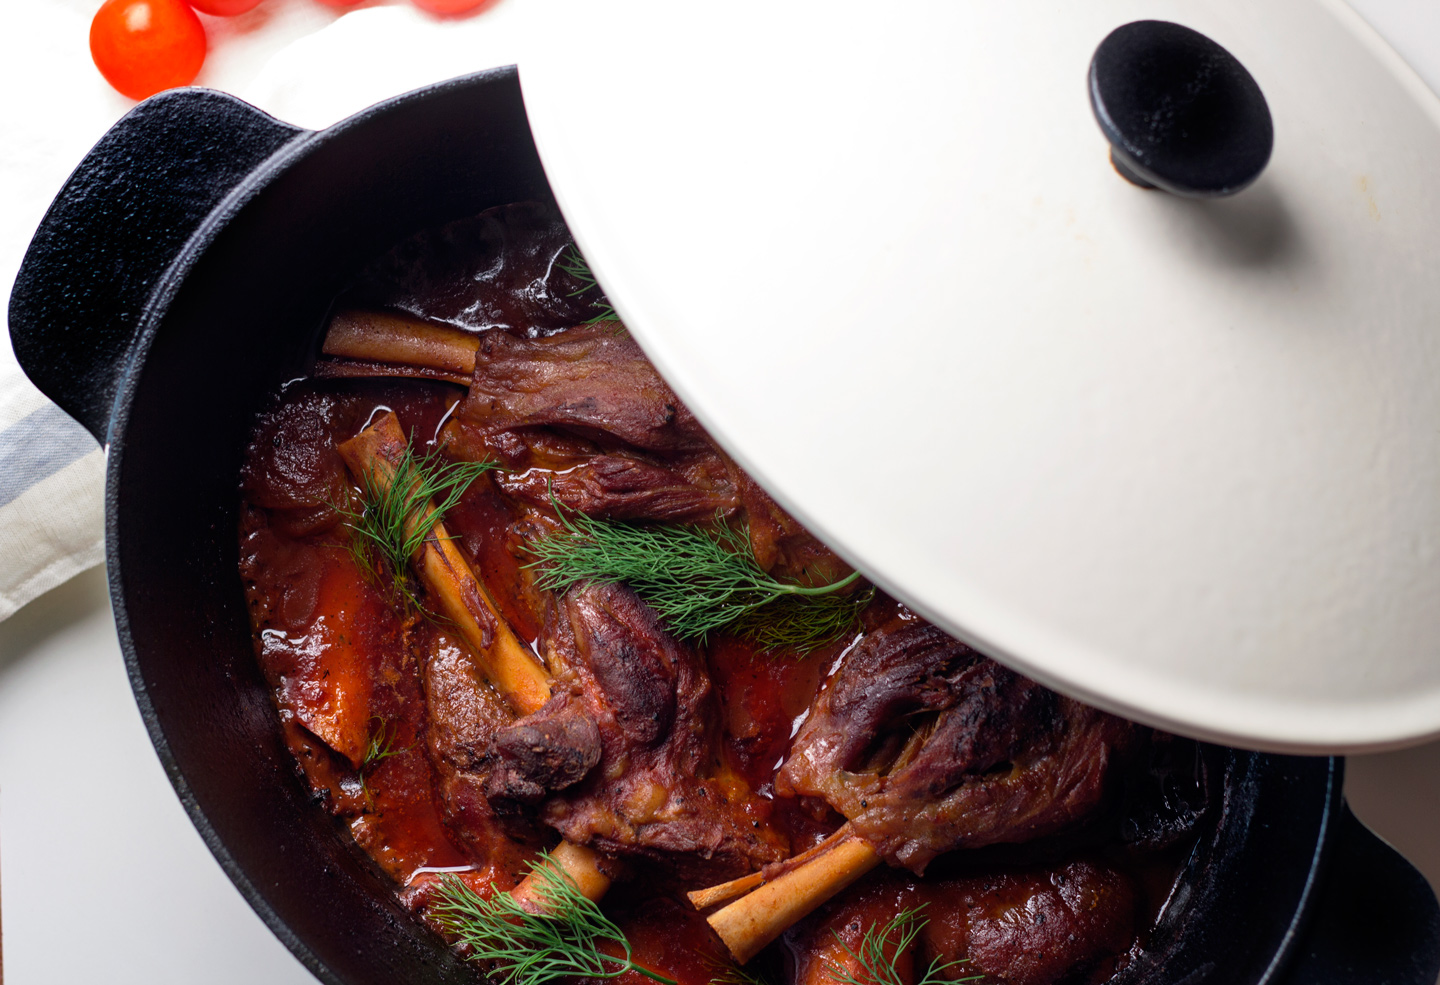 Lamb Shanks Braised in Tomato Sauce